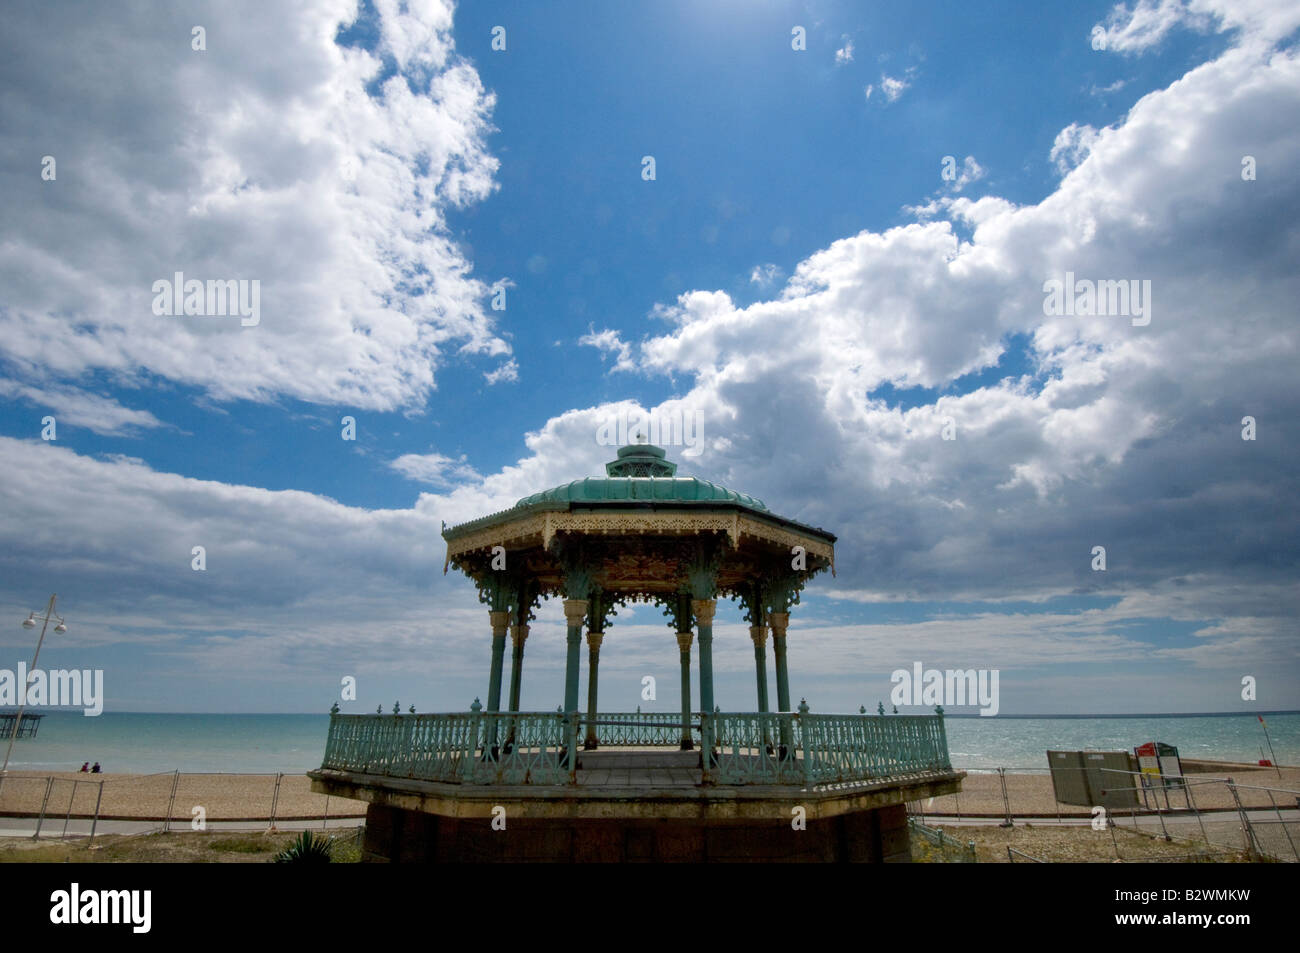 The decaying rusting neglected Victorian bandstand on the promenade of Brighton and Hove - Stock Image